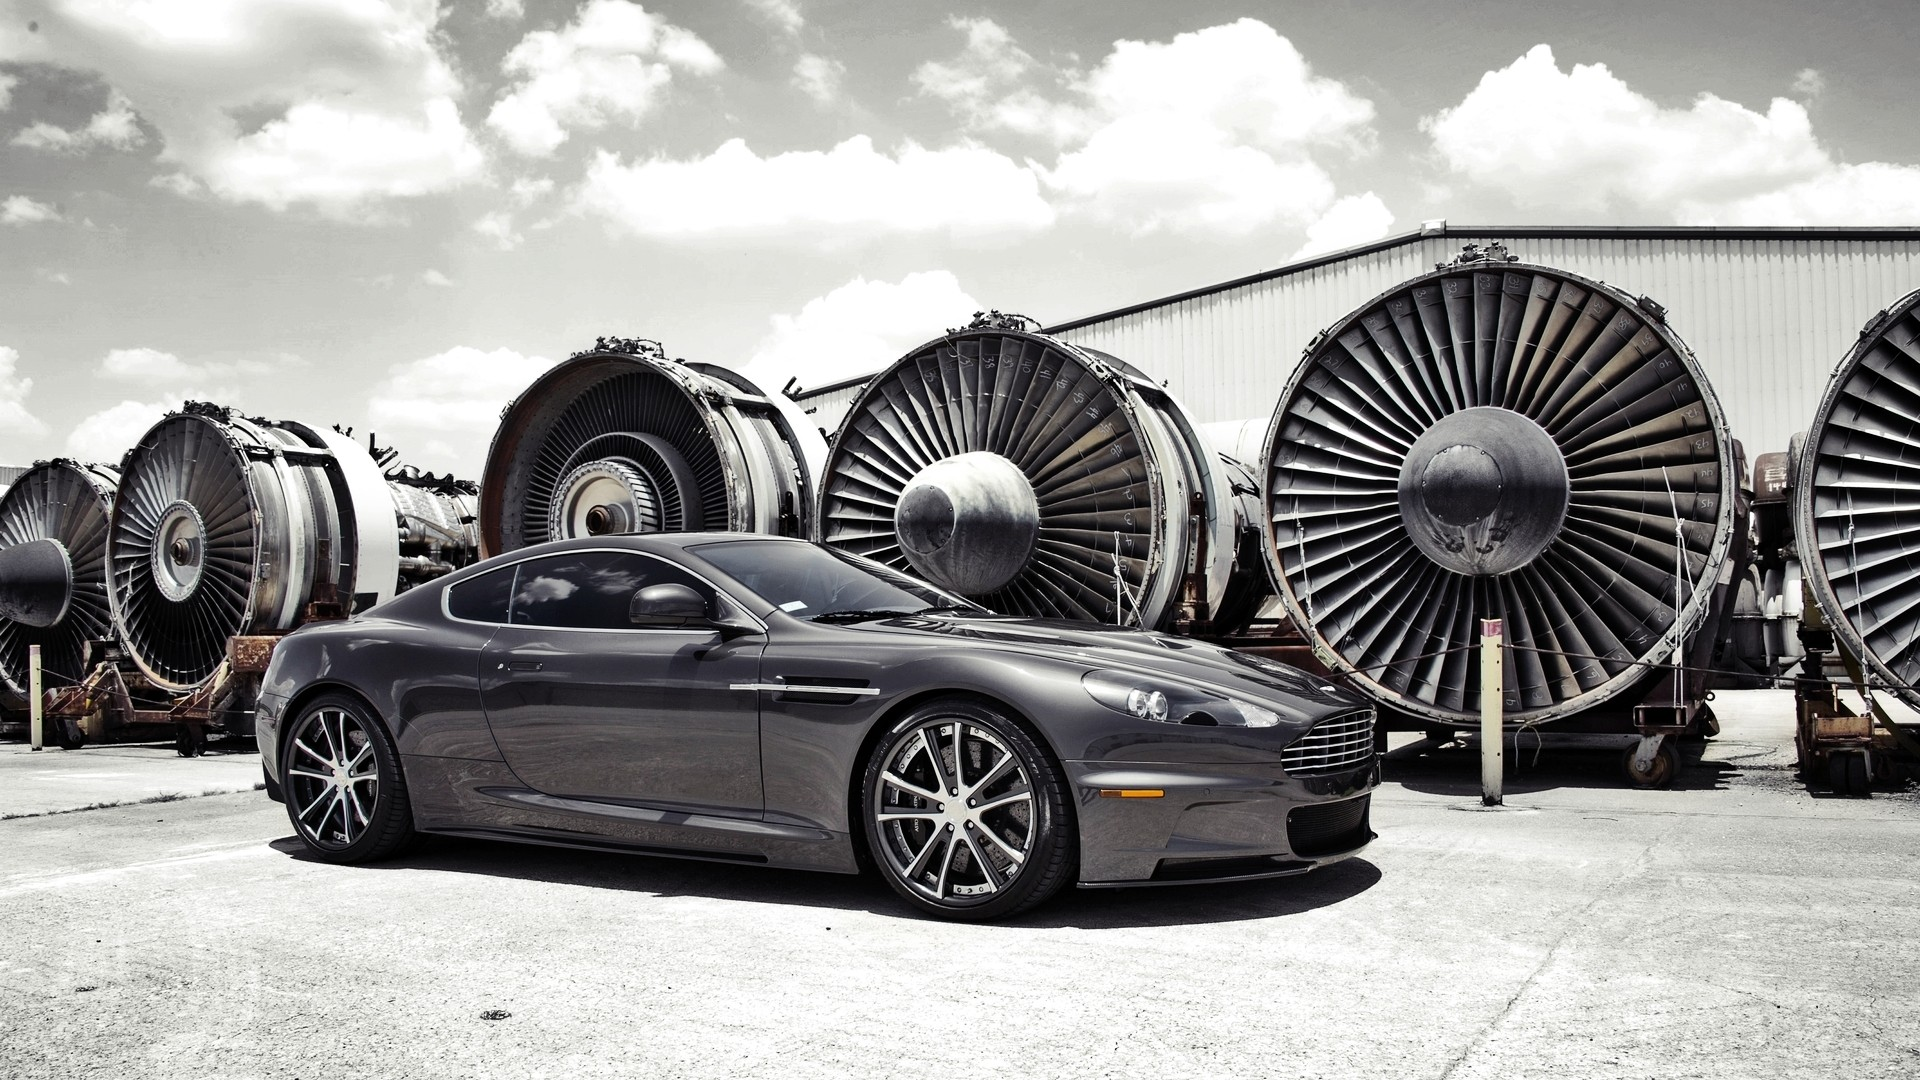 General 1920x1080 car Aston Martin vehicle turbines Aston Martin DBS hangar clouds sunlight